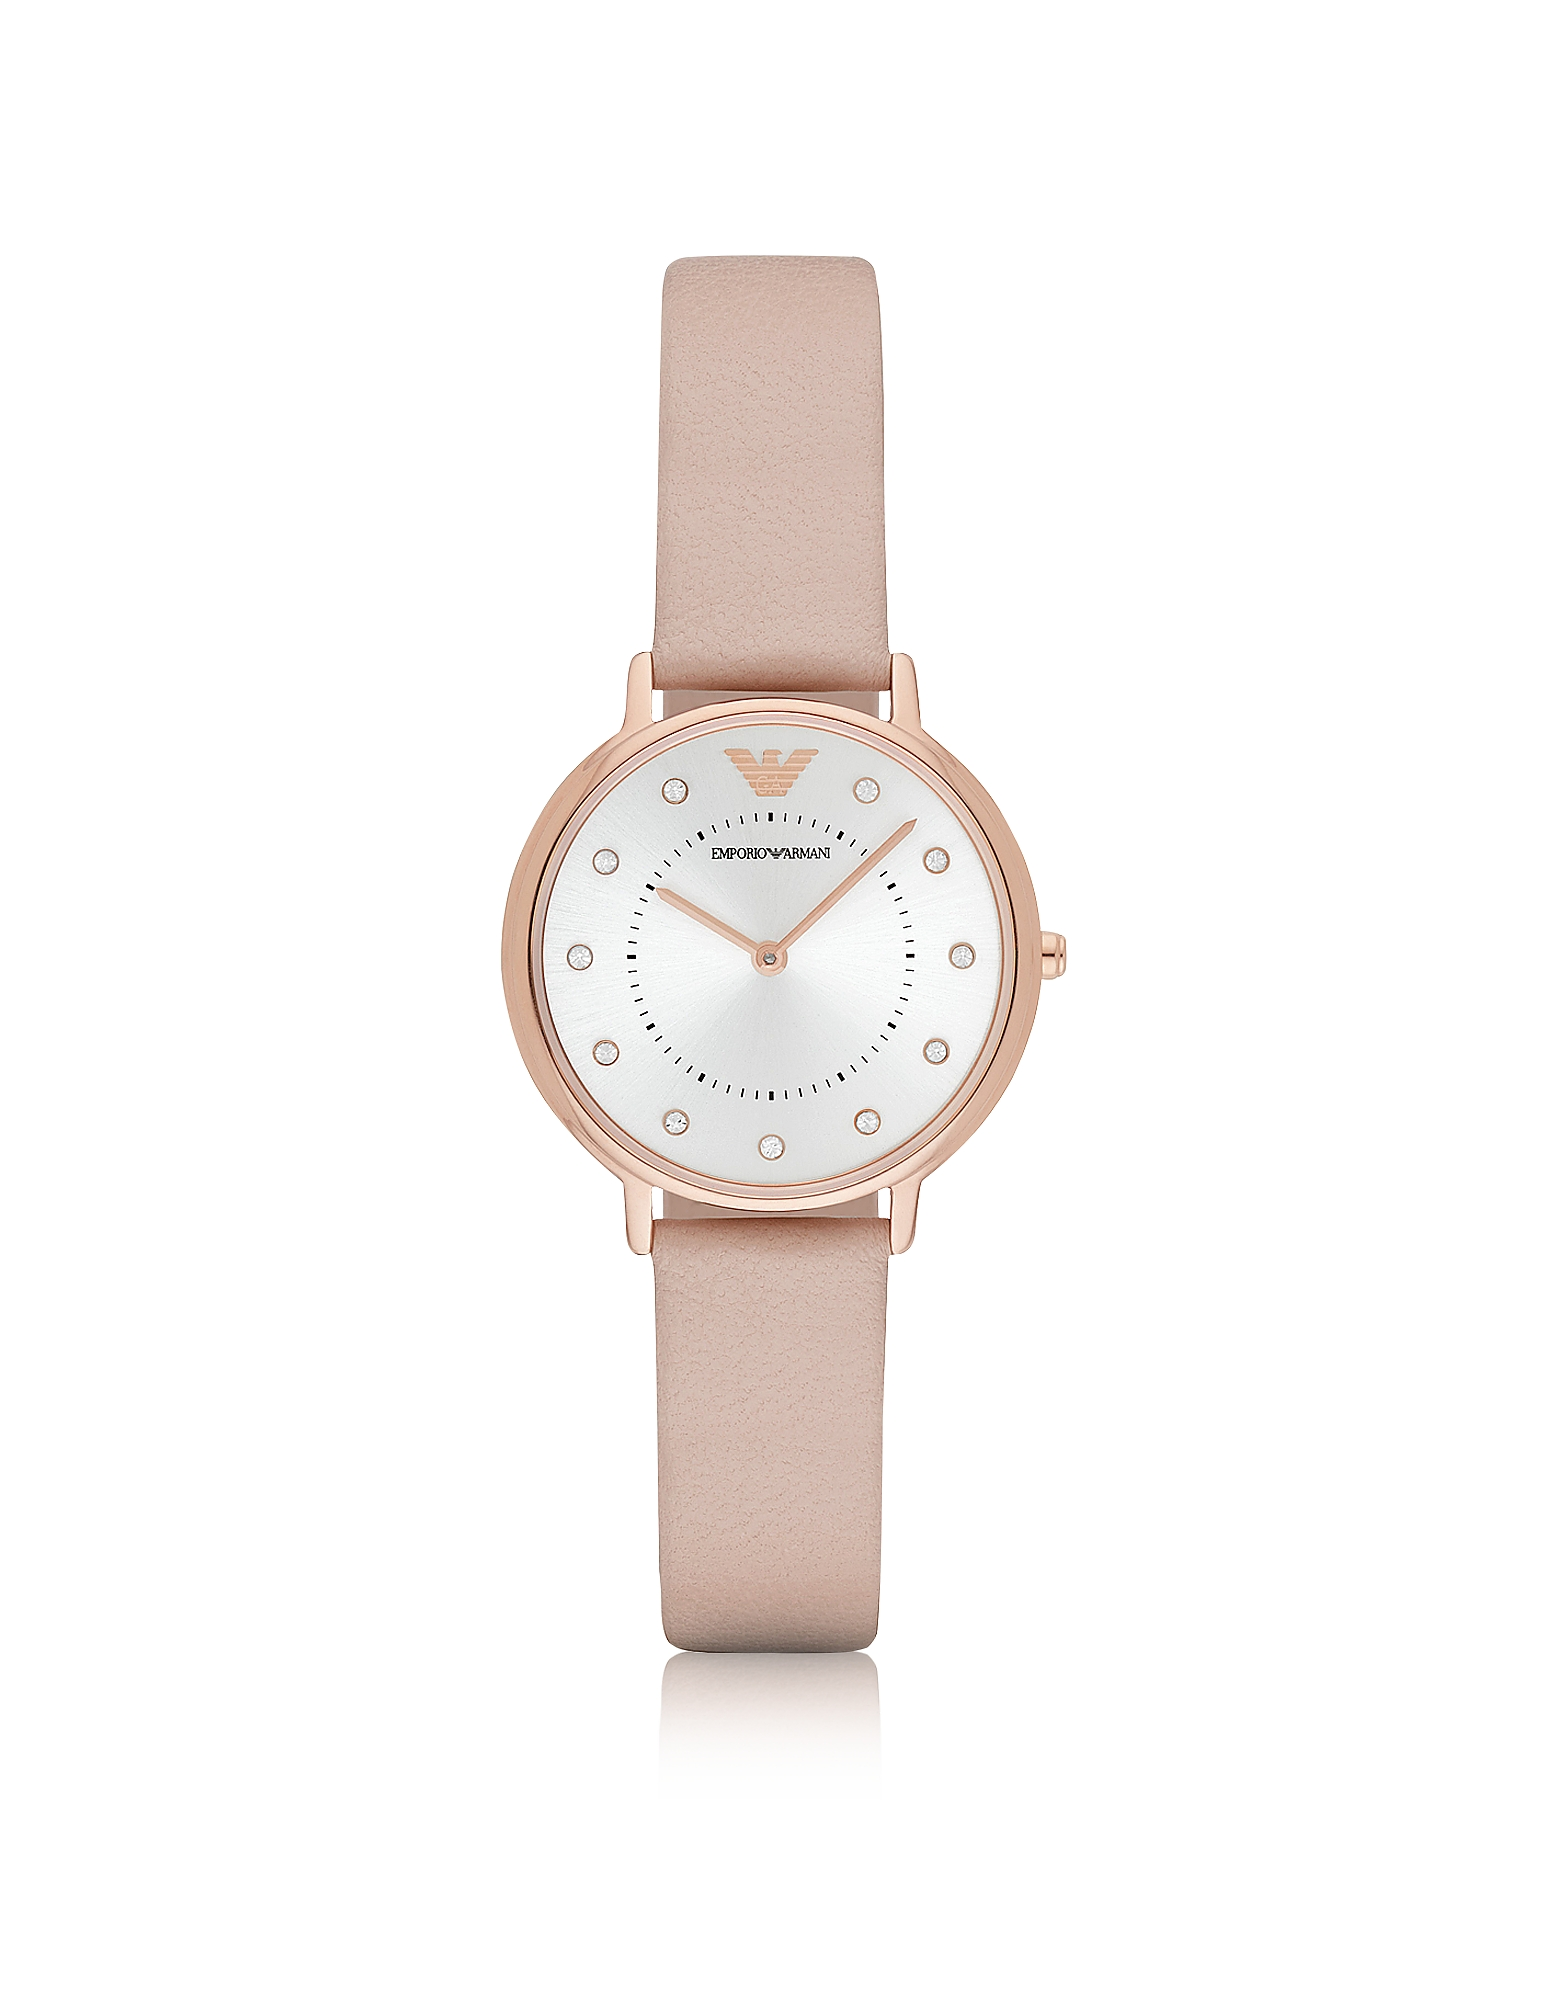 Emporio Armani Women's Watches, Kappa Rose Goldtone Stainless Steel Women's Watch